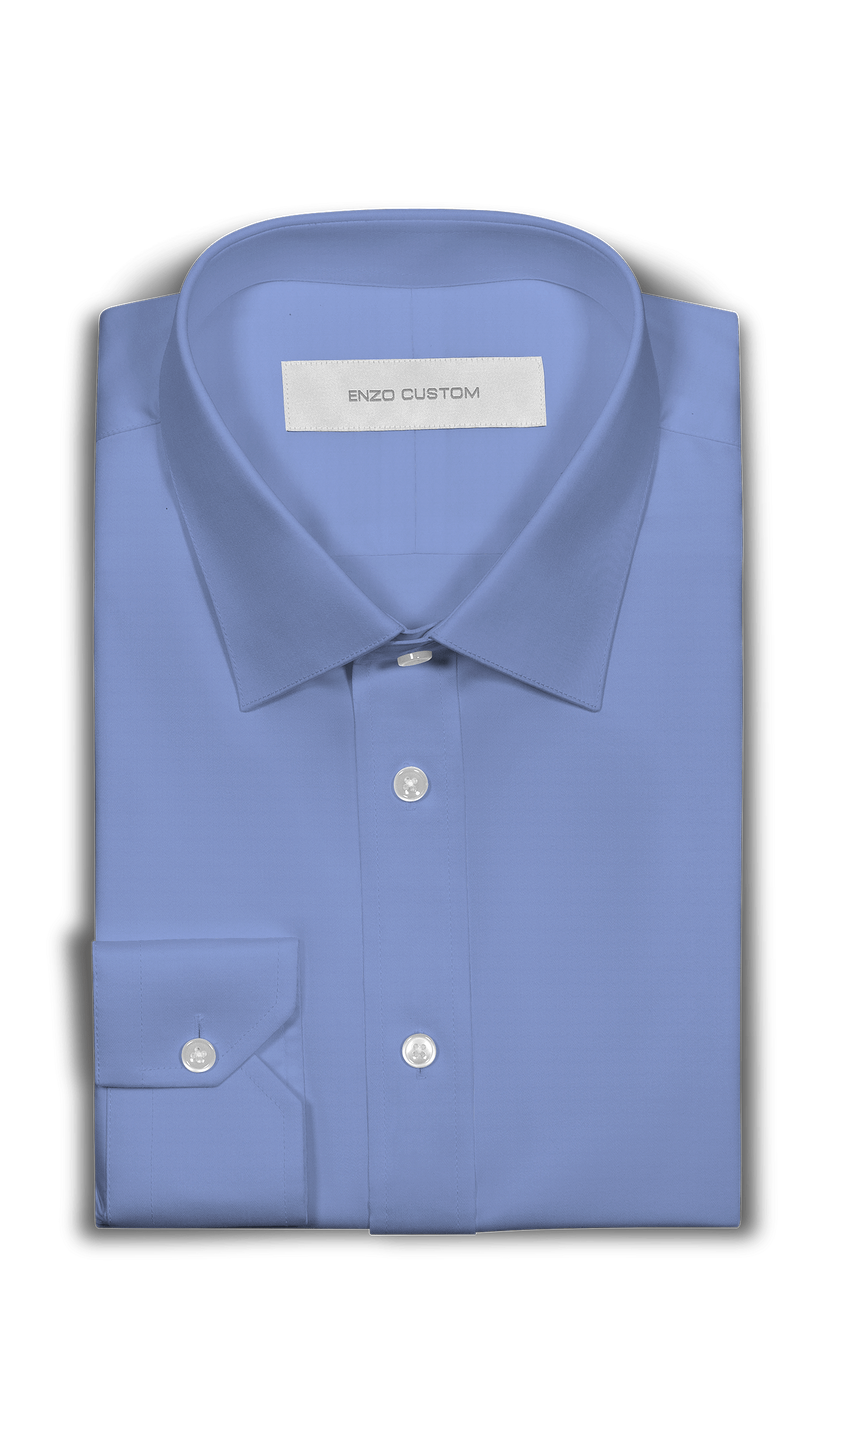 Powder Blue Dress Shirt - Enzo Custom